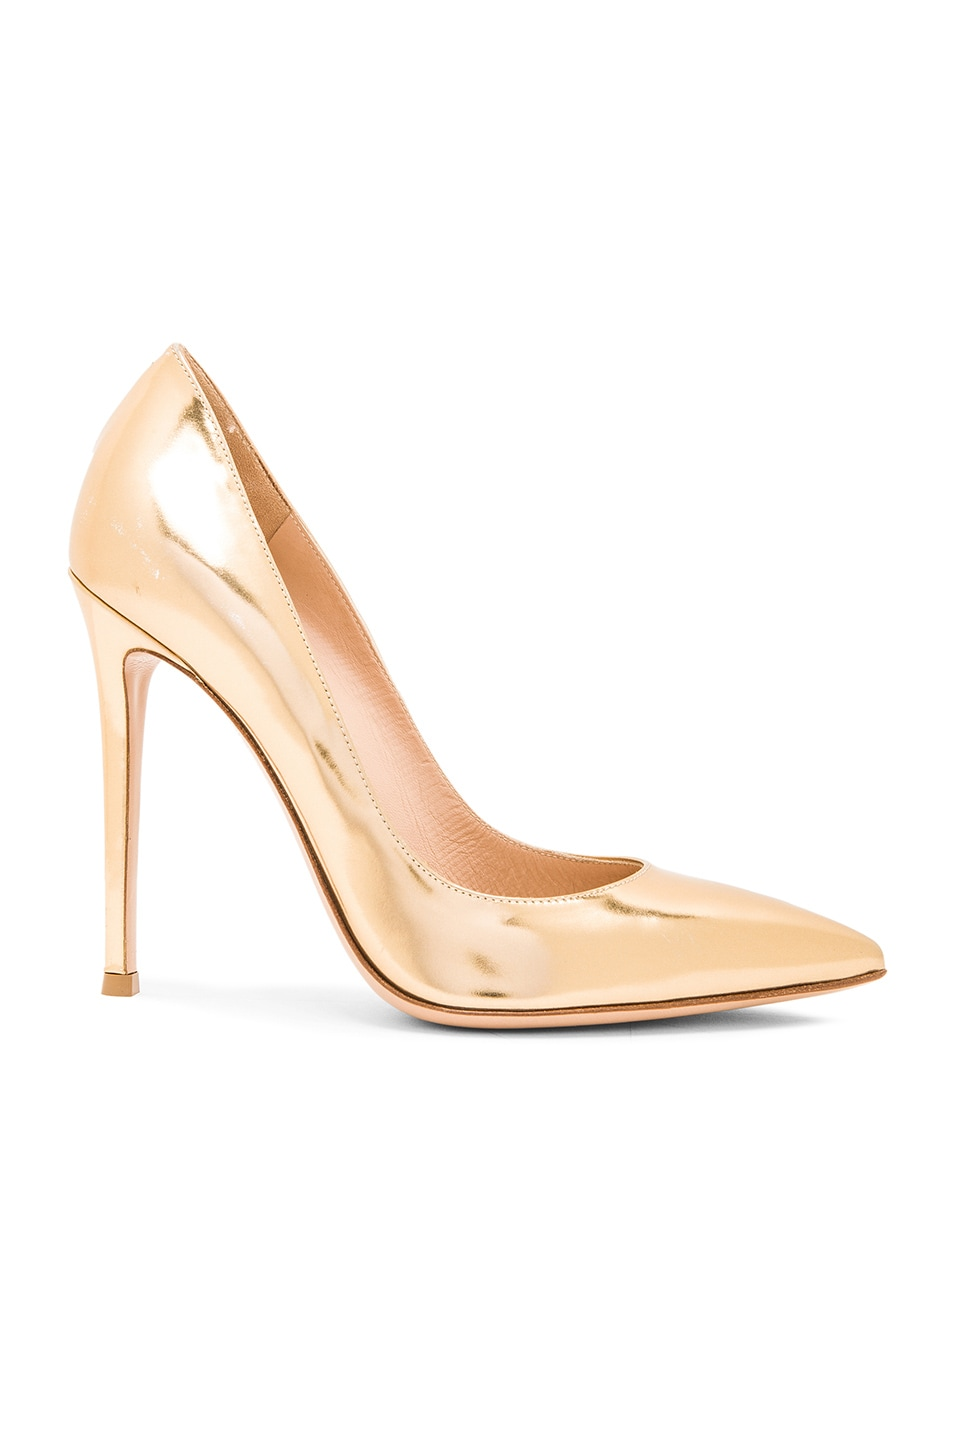 Image 1 of Gianvito Rossi Metallic Leather Gianvito Pumps in Mekong